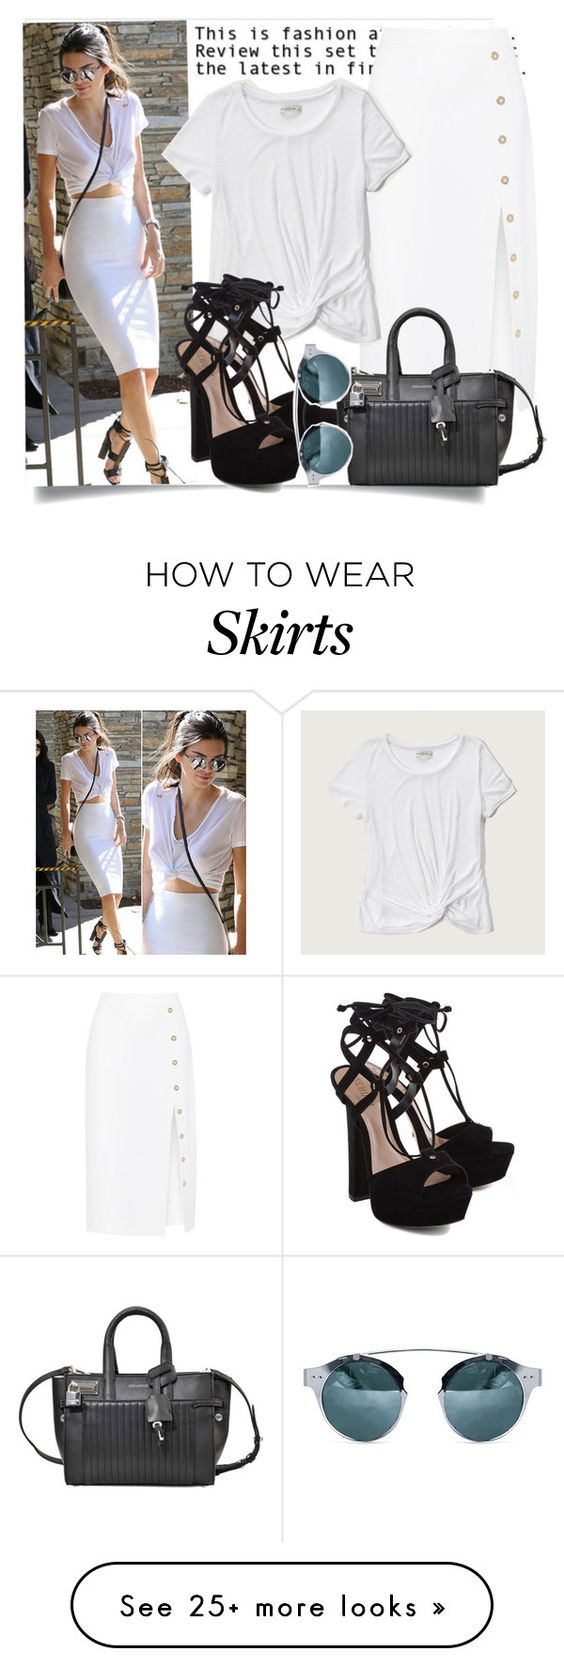 """""""Get The Look - Kendall Jenner"""" by hattie4palmerstone on Polyvore featuring Cushnie Et Ochs, Abercrombie & Fitch, Schutz, Zadig & Voltaire, GetTheLook, kendalljenner and polyvoreeditorial"""